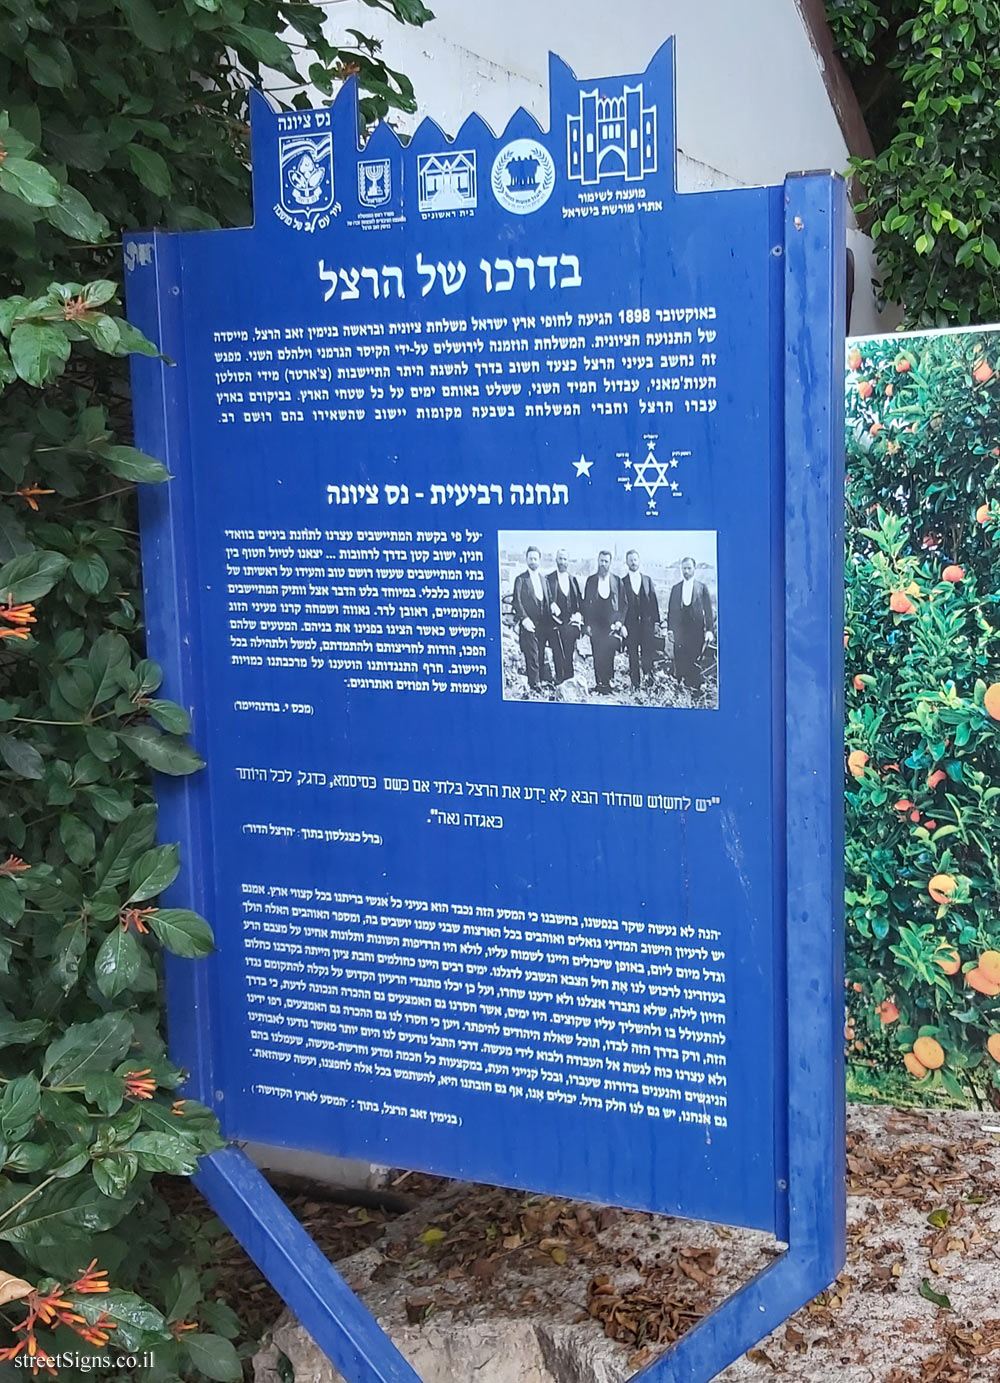 Ness Ziona - Heritage Sites in Israel - In Herzl's Way - 4th Station